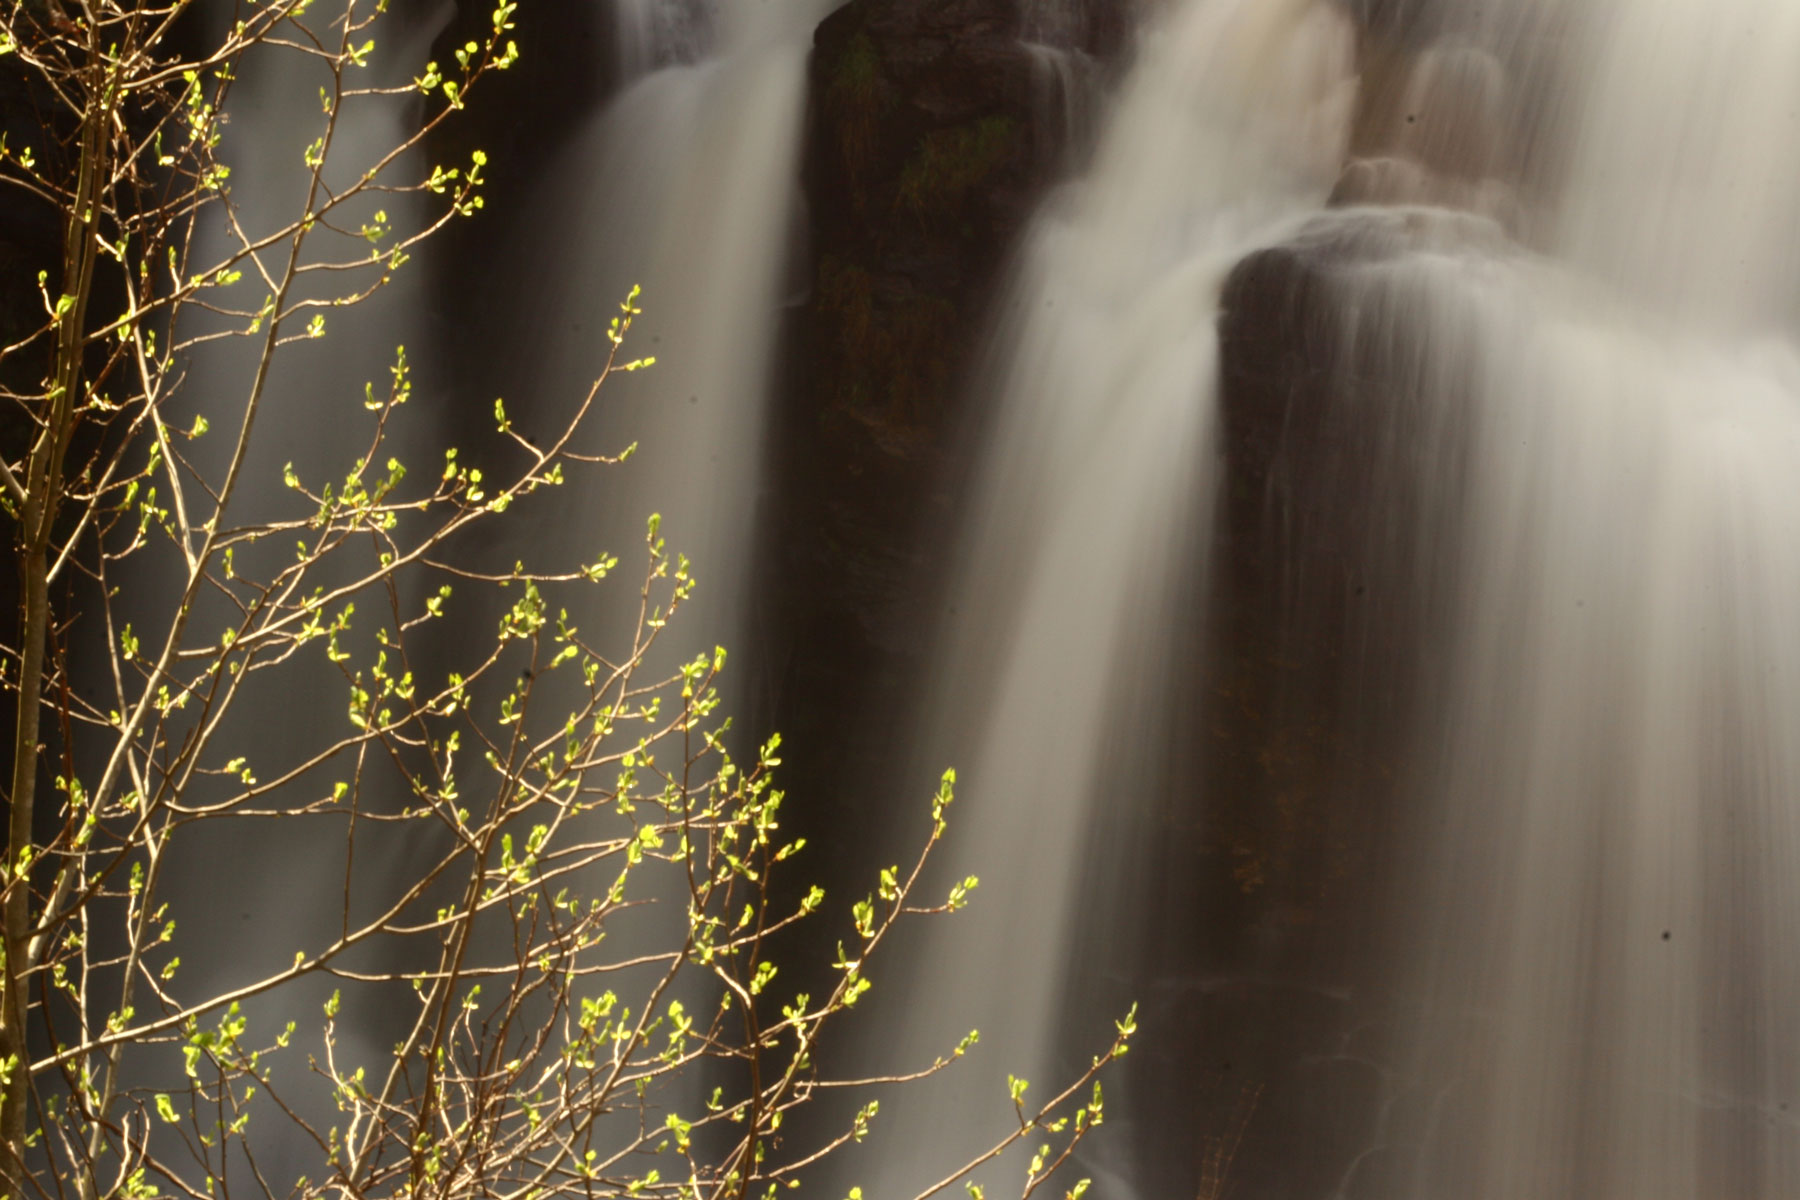 Spray of waterfalls behind a tree branch